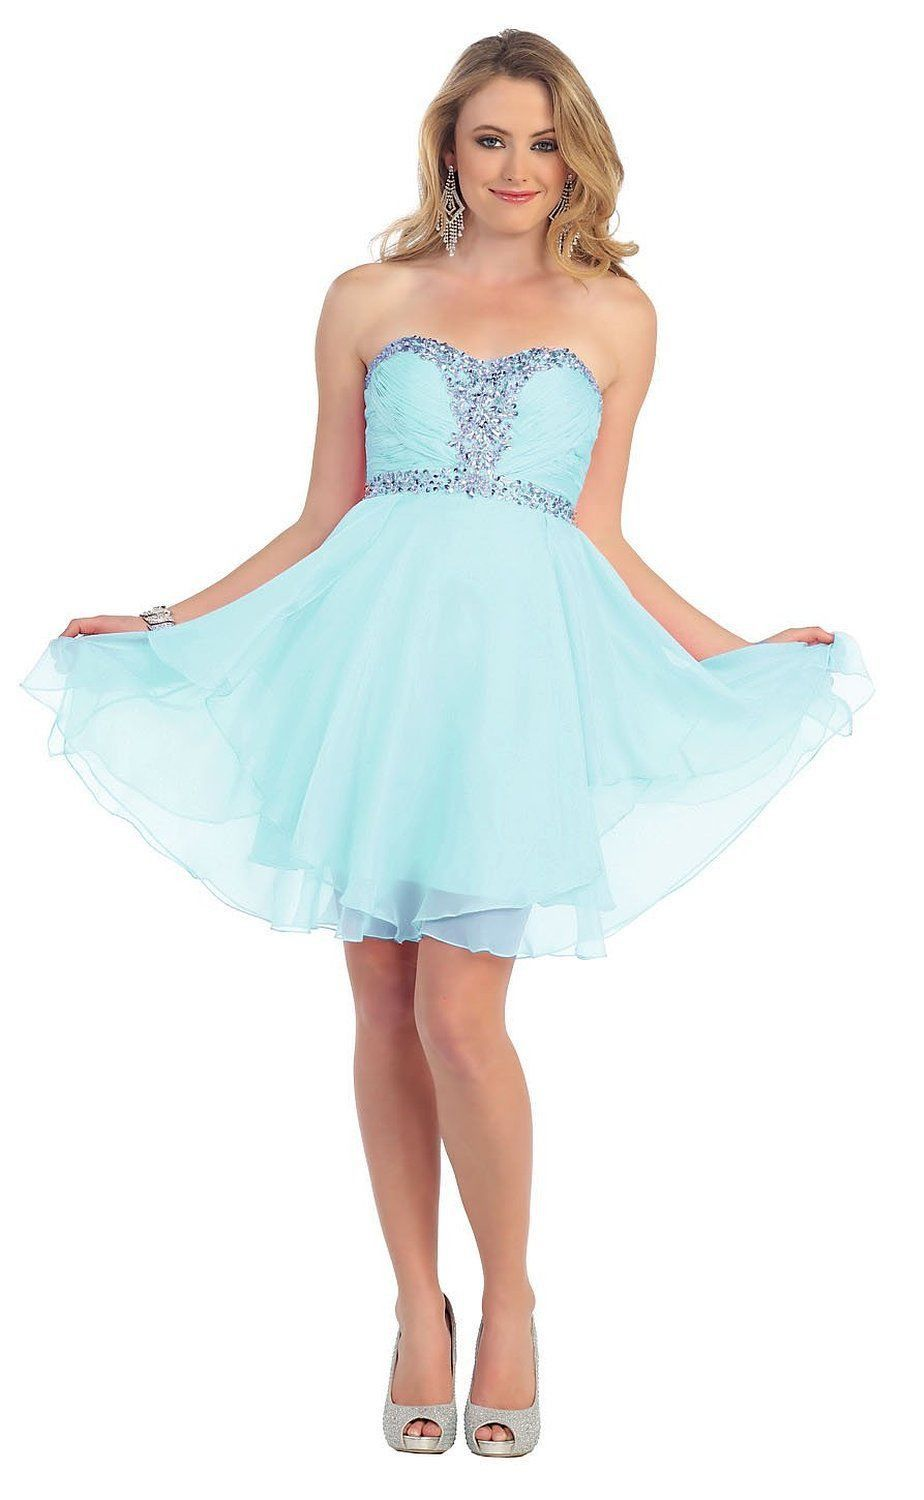 Short Prom Plus Size Homecoming Cocktail Dress - The Dress Outlet Aqua